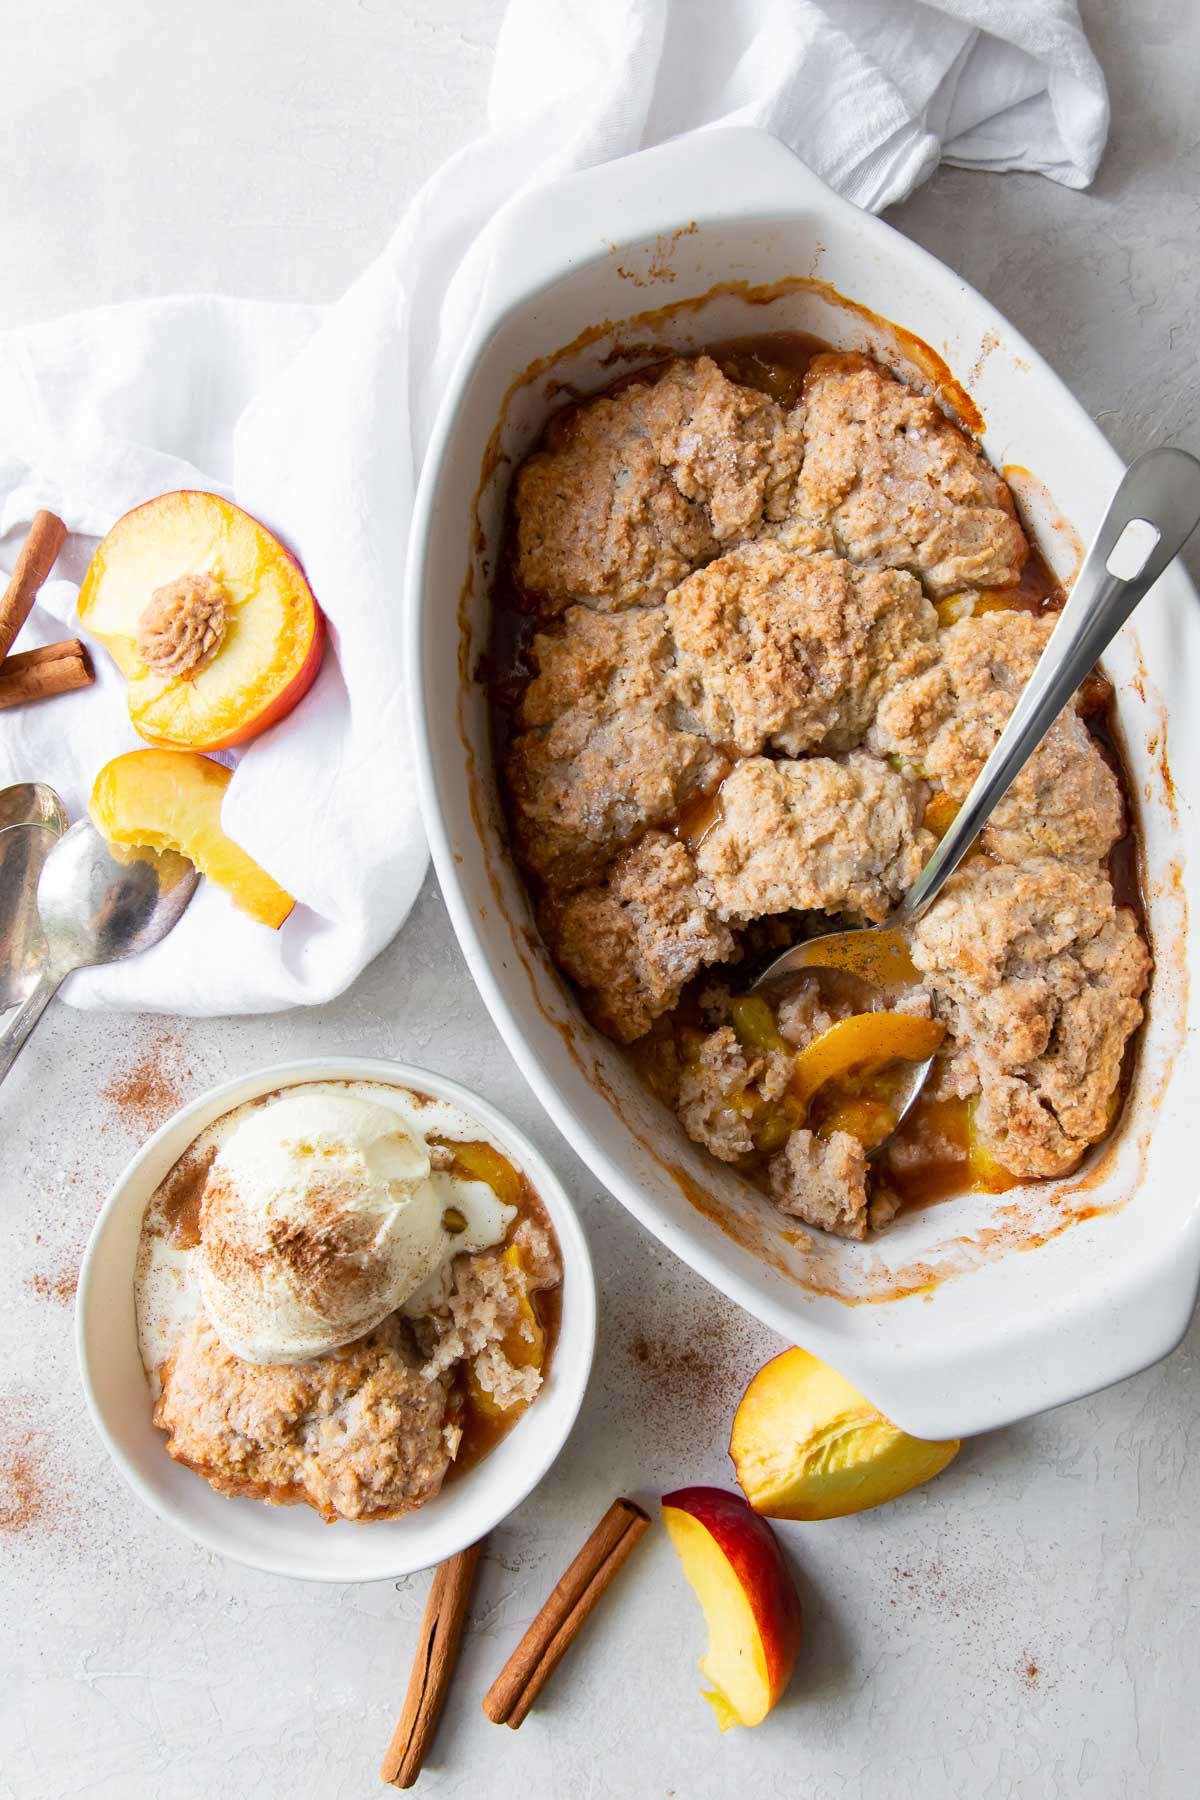 baked peach cobbler in a dish and a serving of cobbler in a small bowl topped with vanilla ice cream